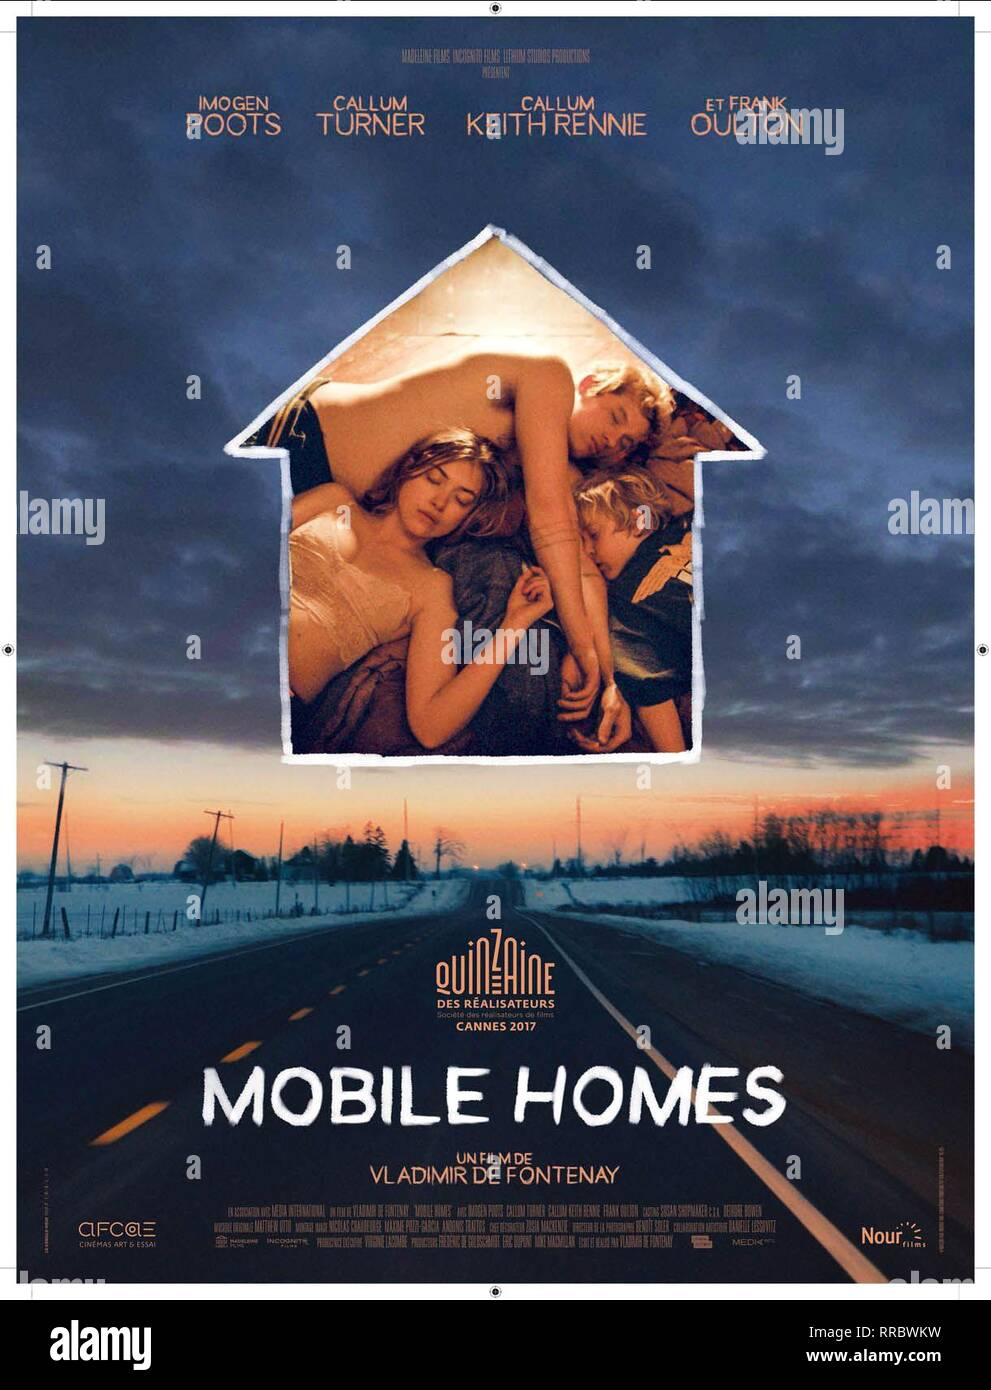 MOBILE HOMES, MOVIE POSTER, 2017 - Stock Image